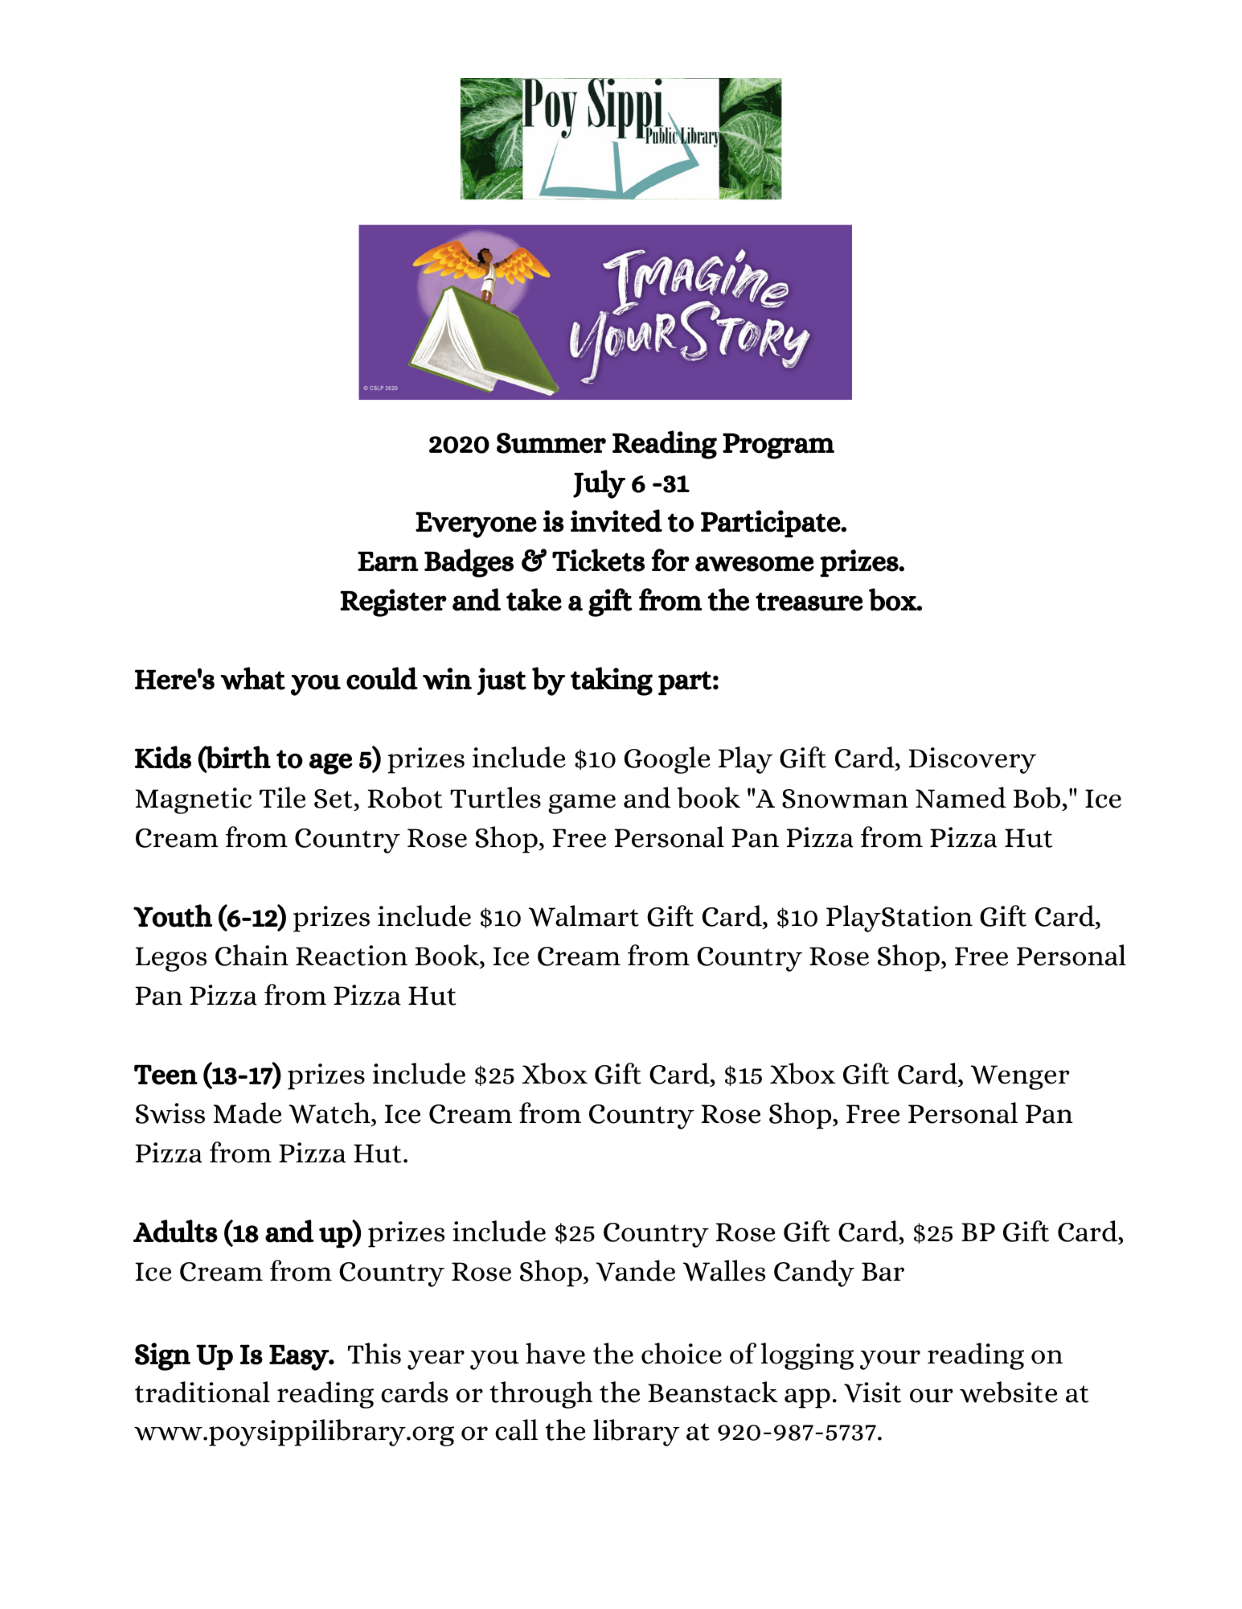 Summer Reading Program Starts July 6